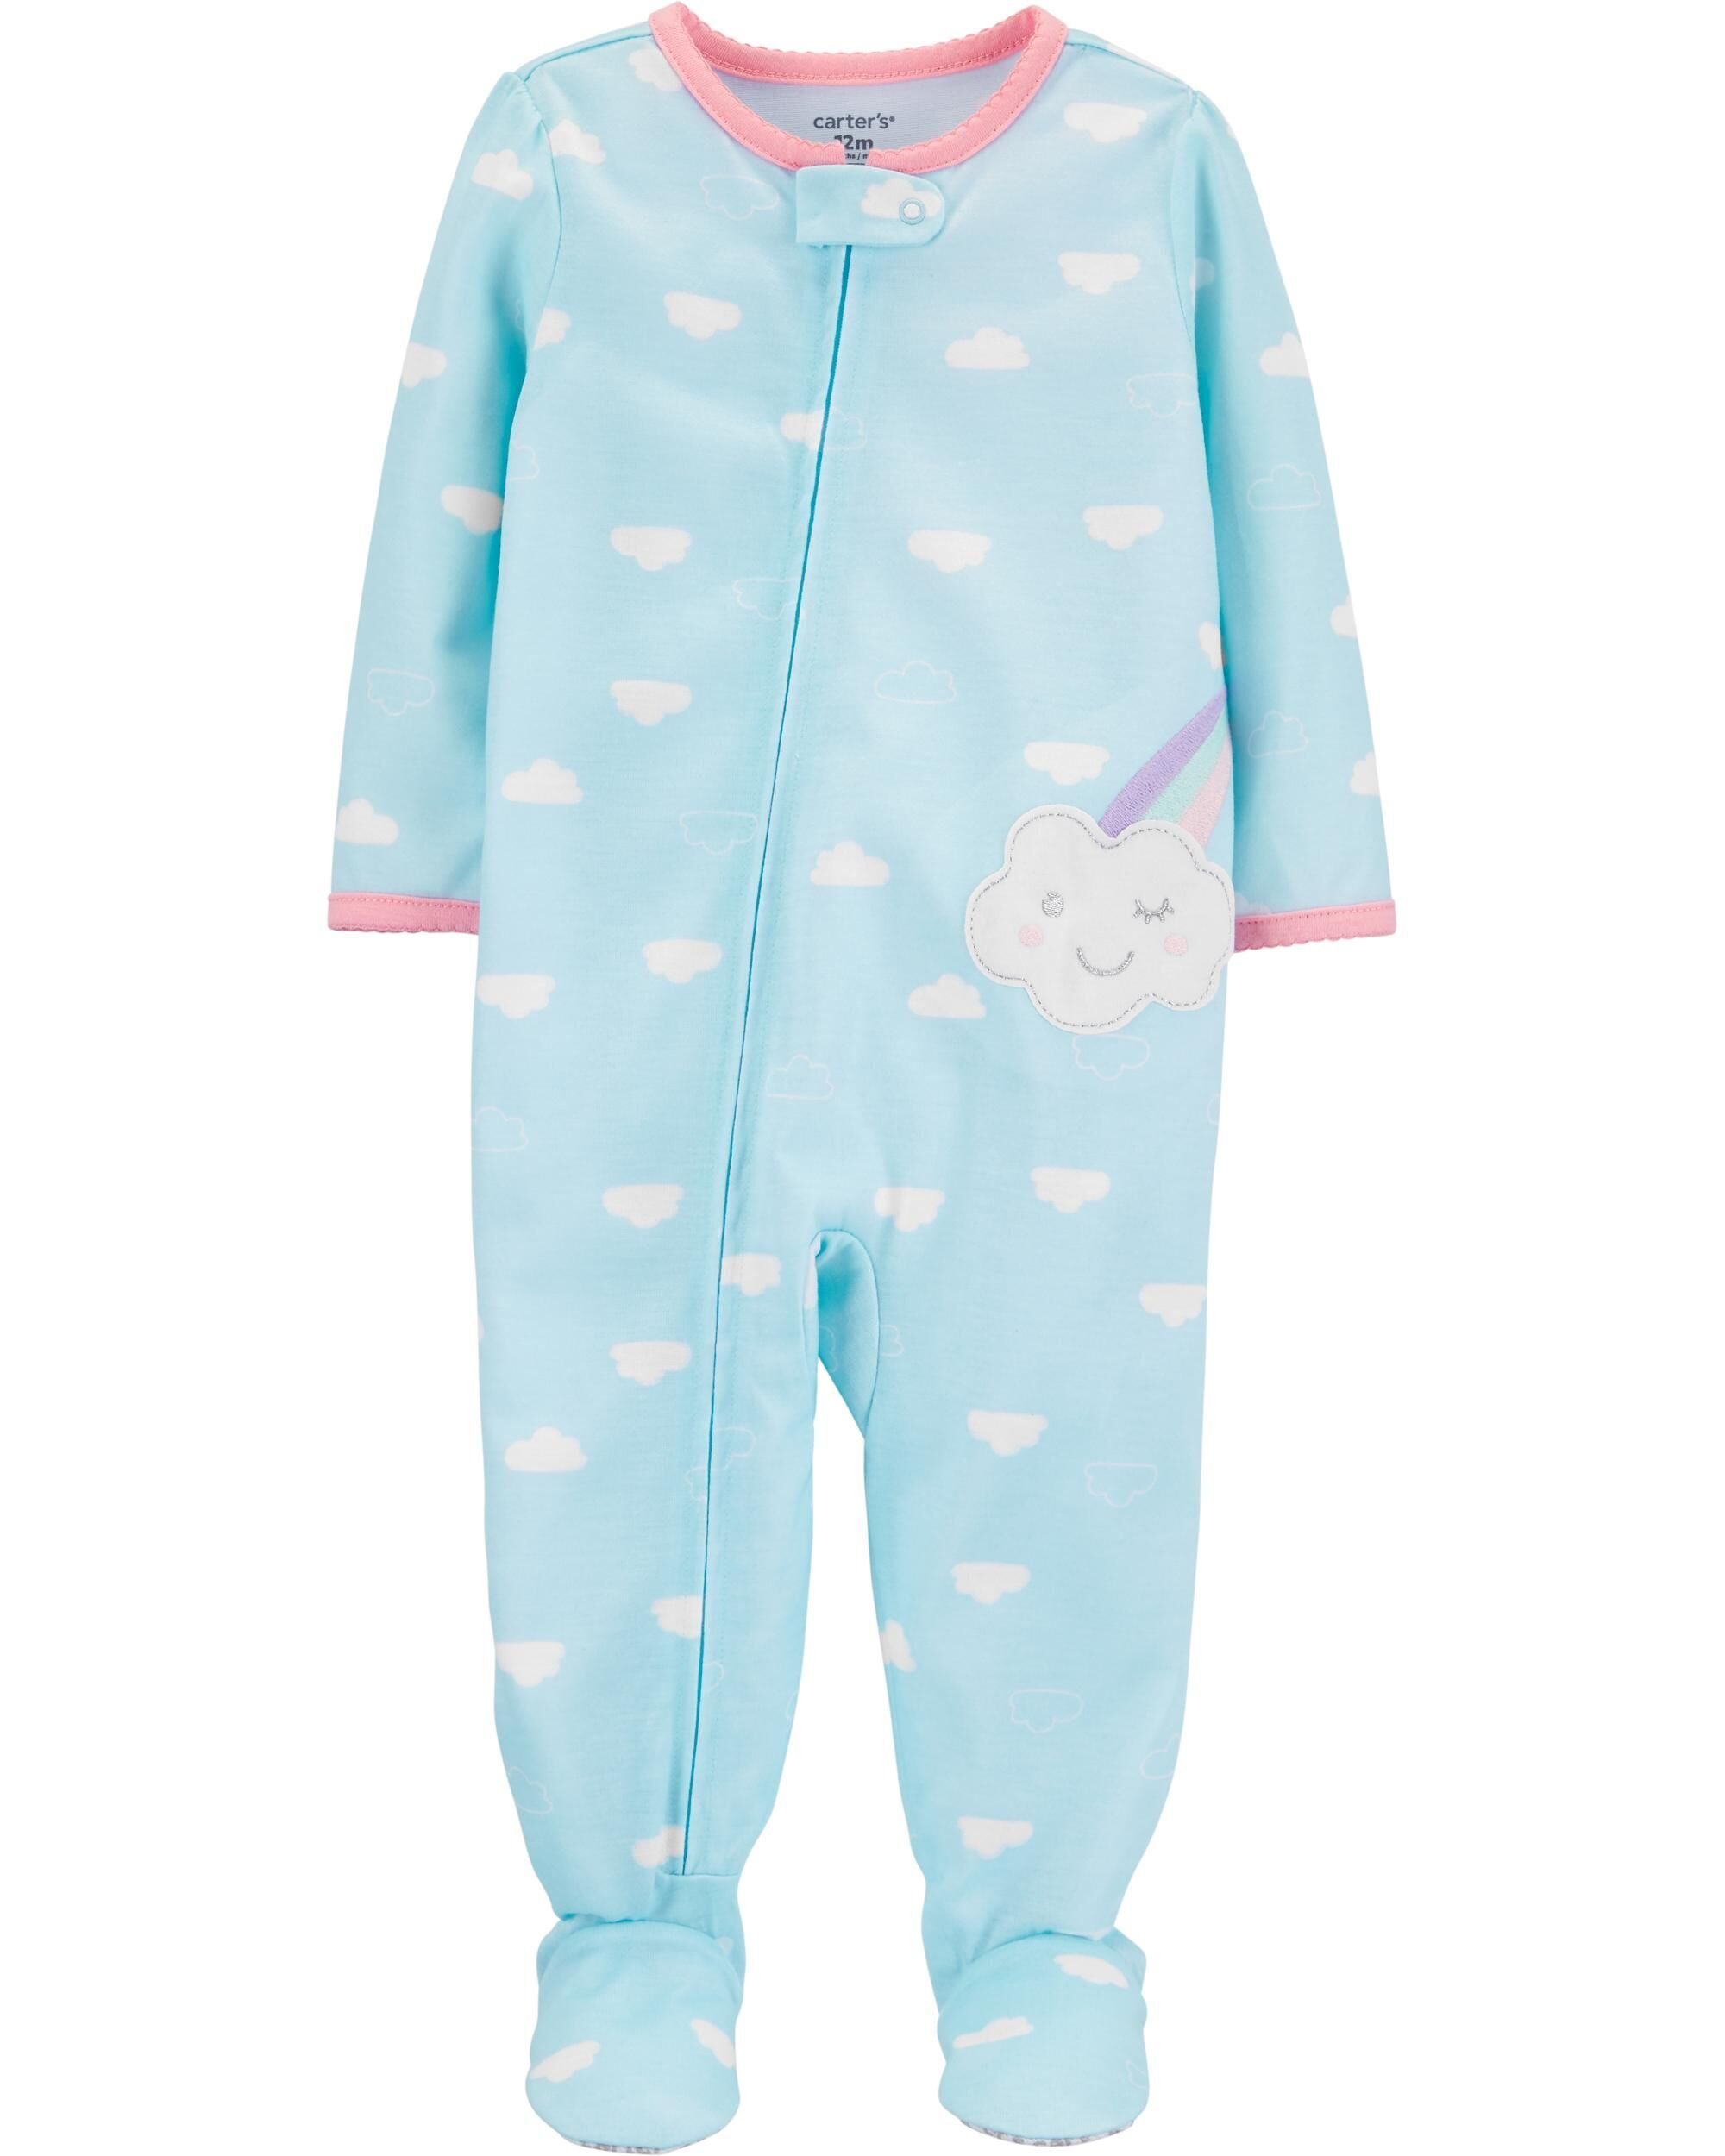 NWT Carter/'s Infant Baby Boys Fleece Sleeper Footie Pajamas BLUE DOGS 6 Months